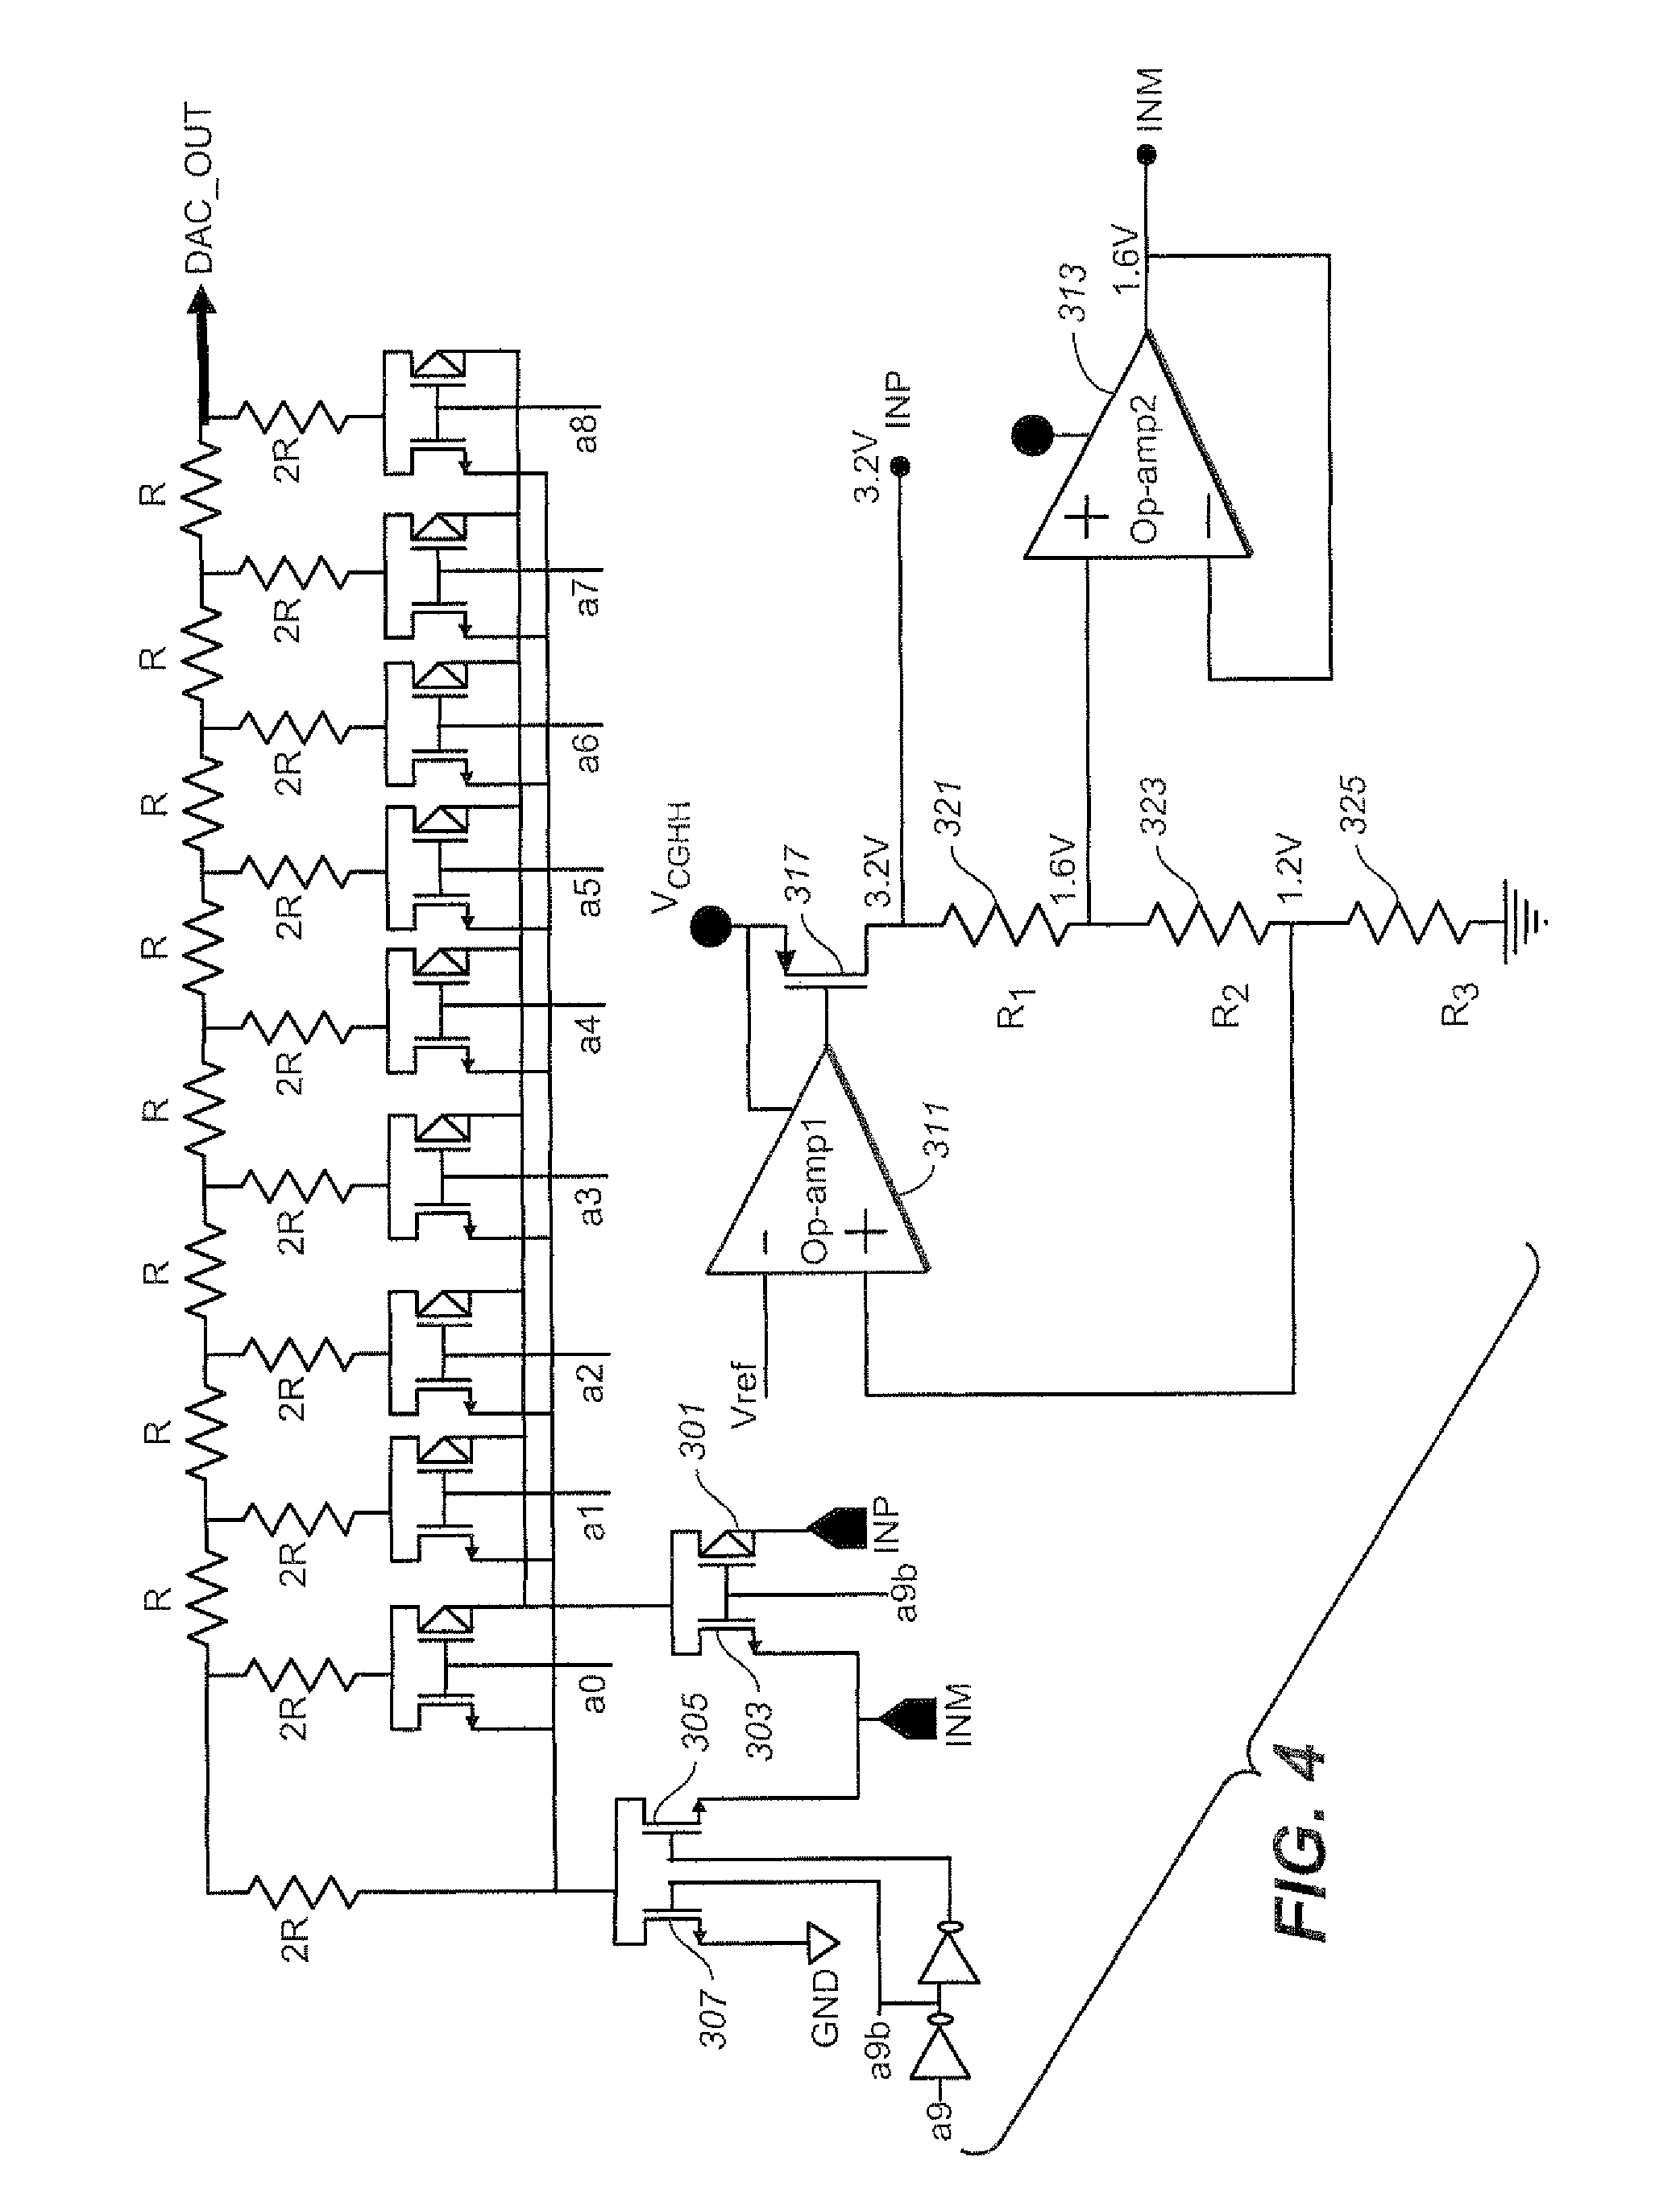 Patent Us7903014 Techniques To Improve Differential Non Linearity Working Of 4 Bit R 2r Ladder D A Converter Circuit 1 Technical Drawing